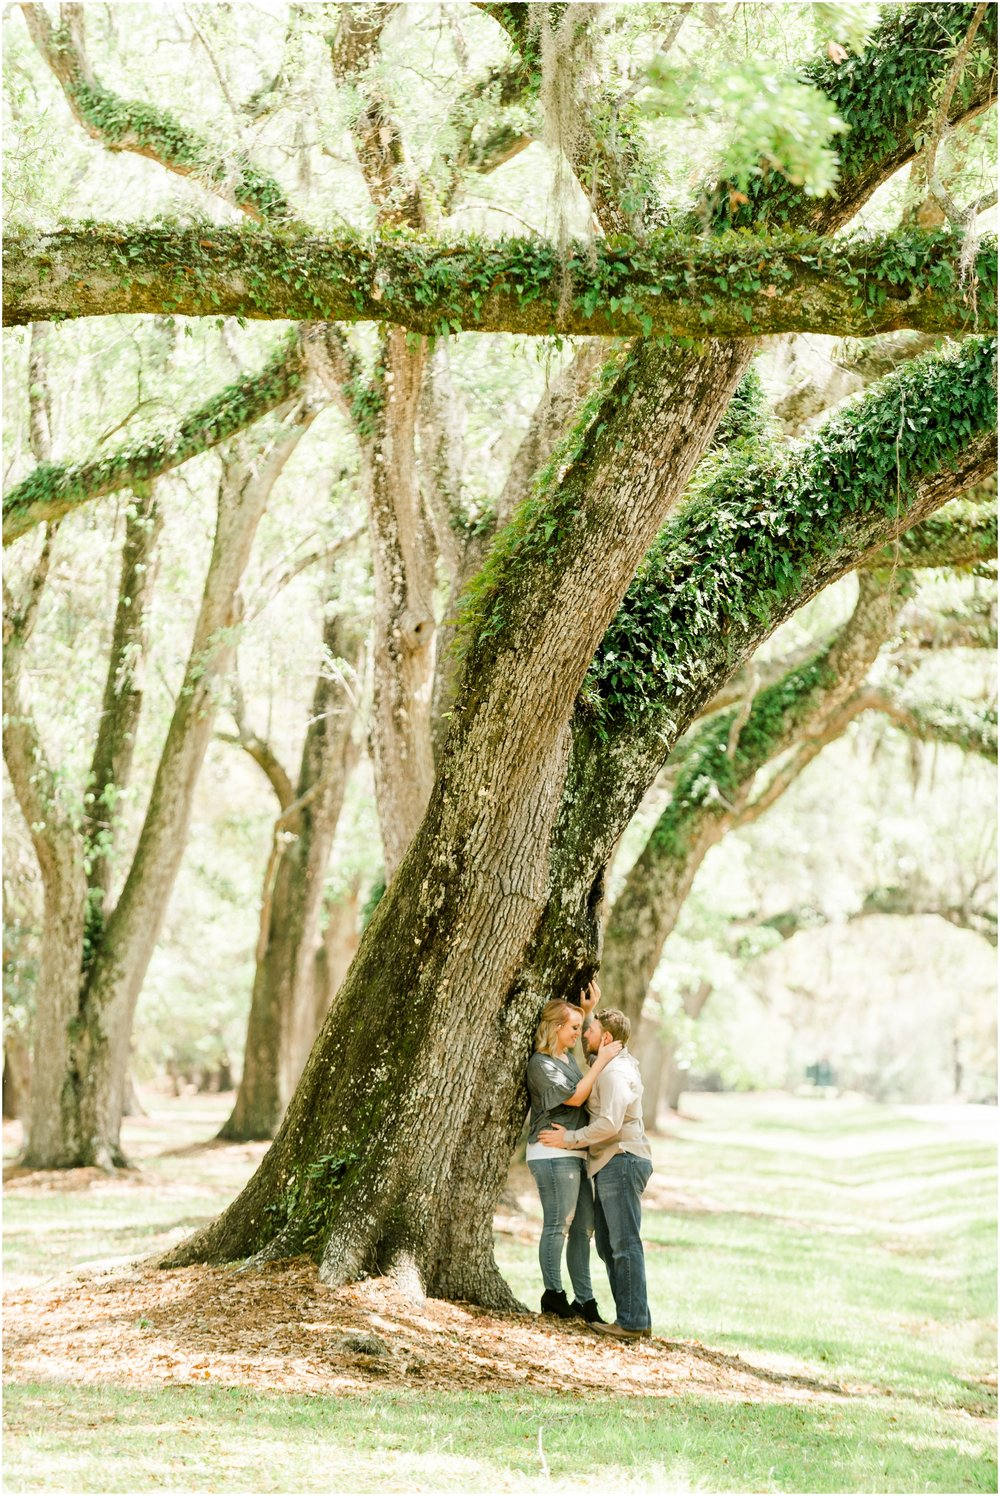 Mepkin-Abbey-Moncks-Corner-South-Carolina-Engagement-Session-Photos_0012.jpg